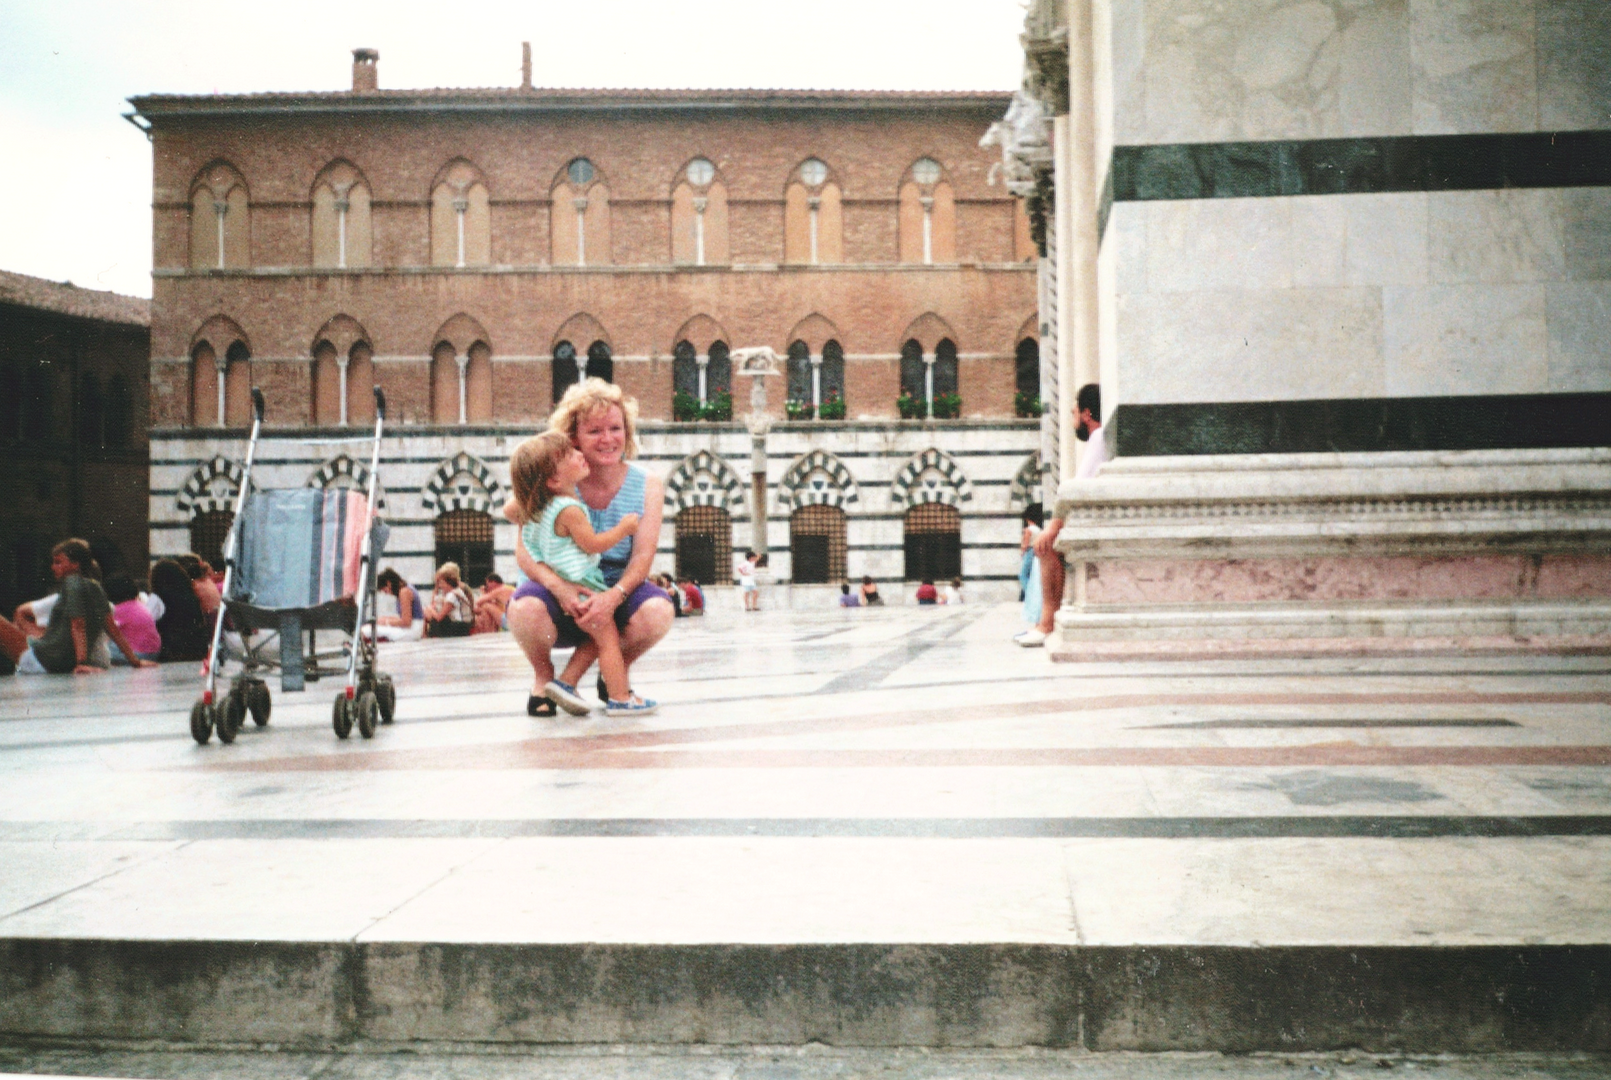 I'm Zoë! Italy was my first love. By the time I could walk, I was gazing up at Italian art